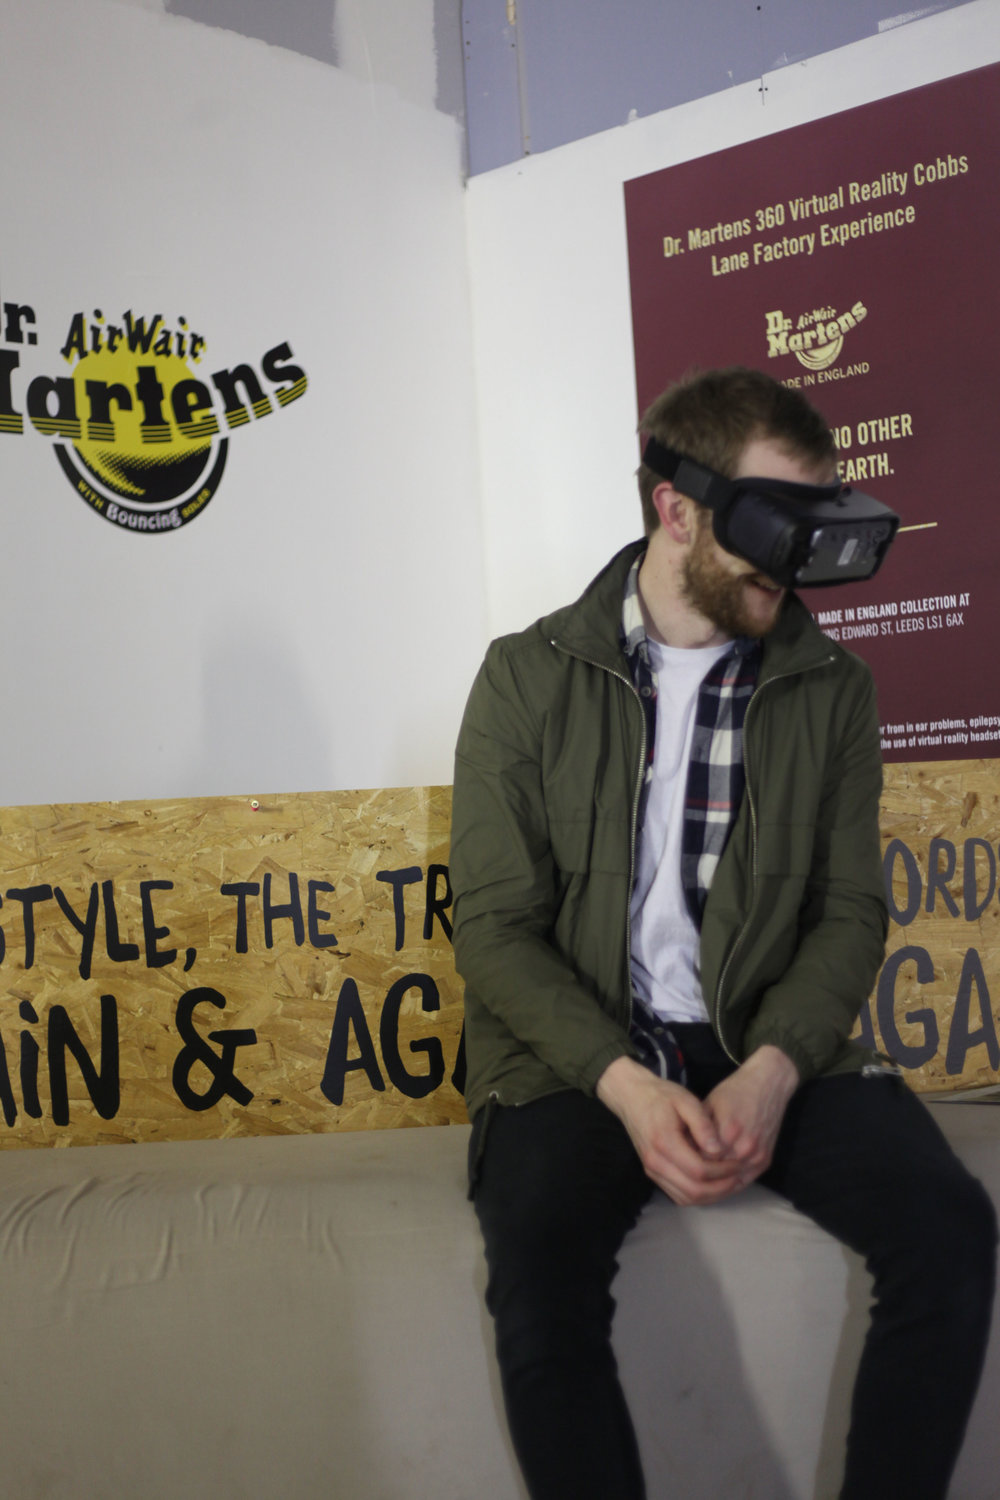 We approached Dr. Marten's, a staple subculture fashion accessory, and invited them to bring their recently launched VR experience to Leeds allowing visitors to step inside the famous DM factory and see how the legendary boots are produced.